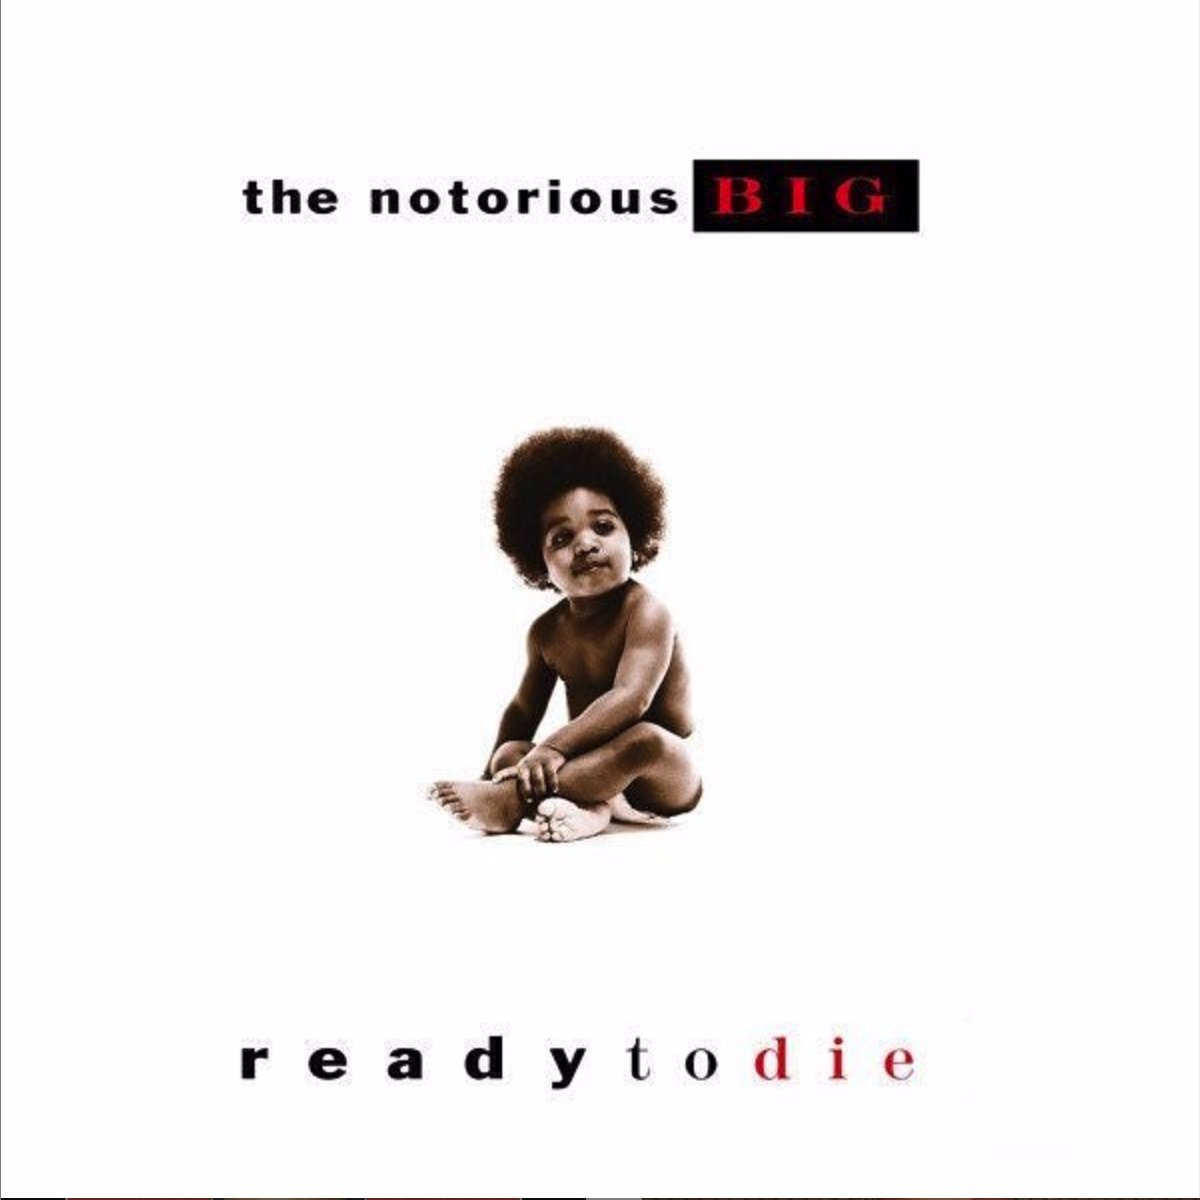 """It was all a dream... I used to read Word Up magazine"""" #Biggie released his debut album Ready To Die 26 years ago today. Drop your favorite track from the album 🔥💿🎧"""